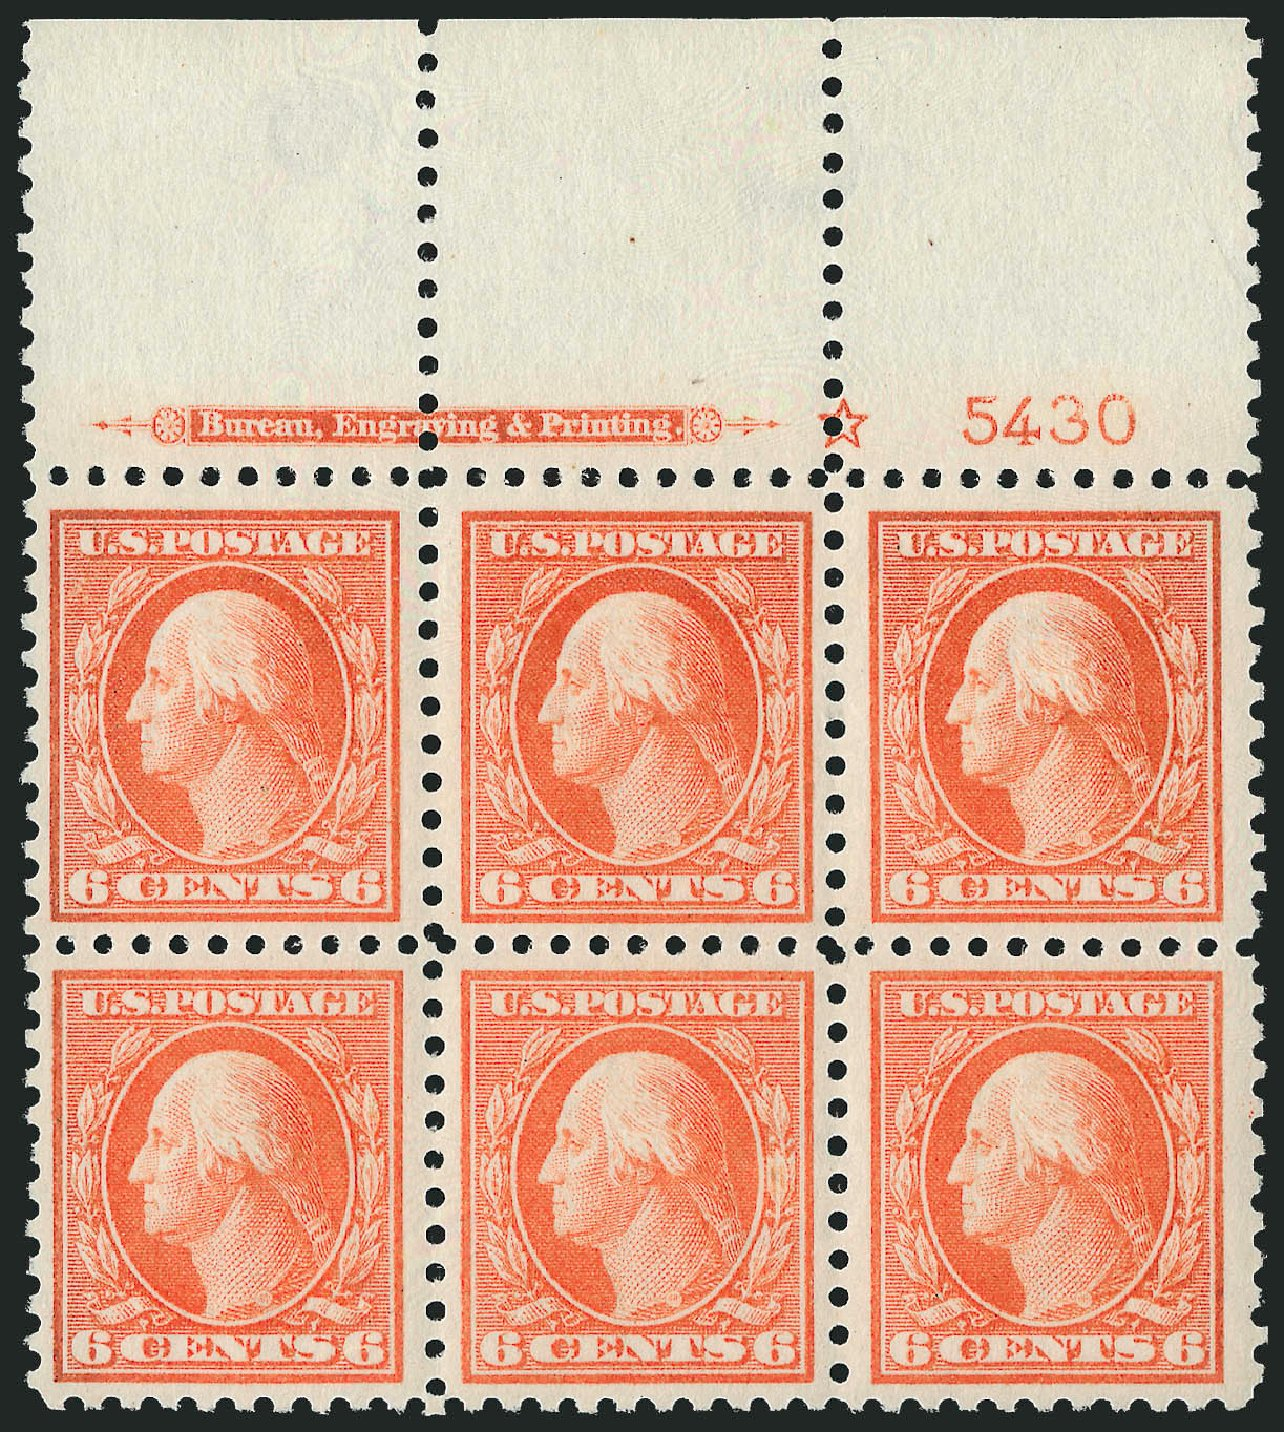 Price of US Stamp Scott Catalog # 429 - 1914 6c Washington Perf 10. Robert Siegel Auction Galleries, Feb 2015, Sale 1093, Lot 297